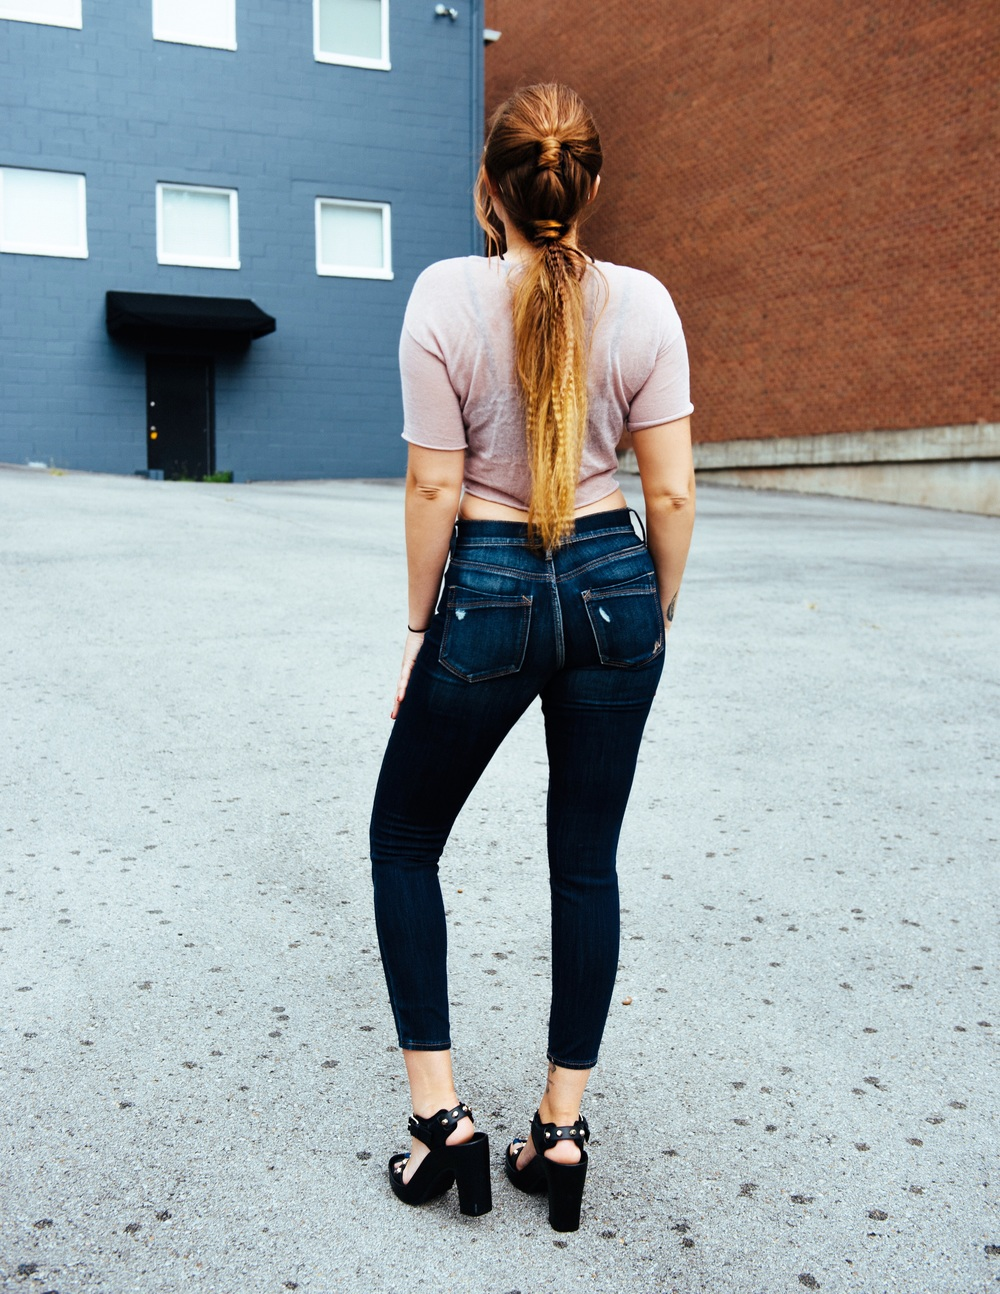 Top + Bralette - Express One Eleven |Jeans - Express | Shoes - Balenciaga GLAM by The Dry House Nashville || photos by Delaney Royer